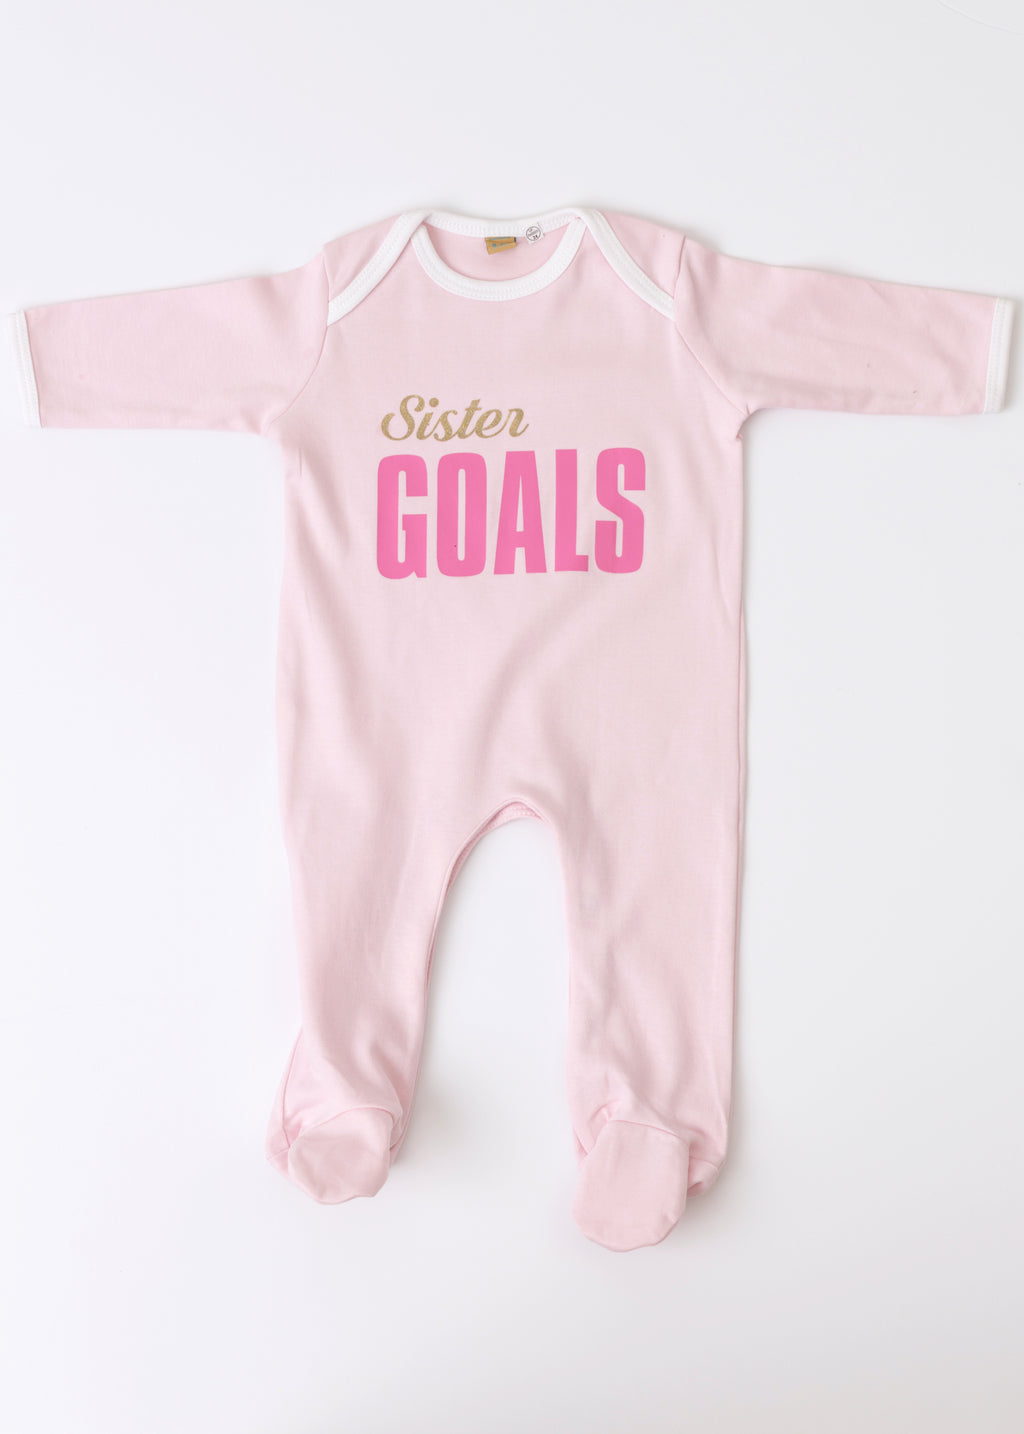 Sister Goals Sleepsuit